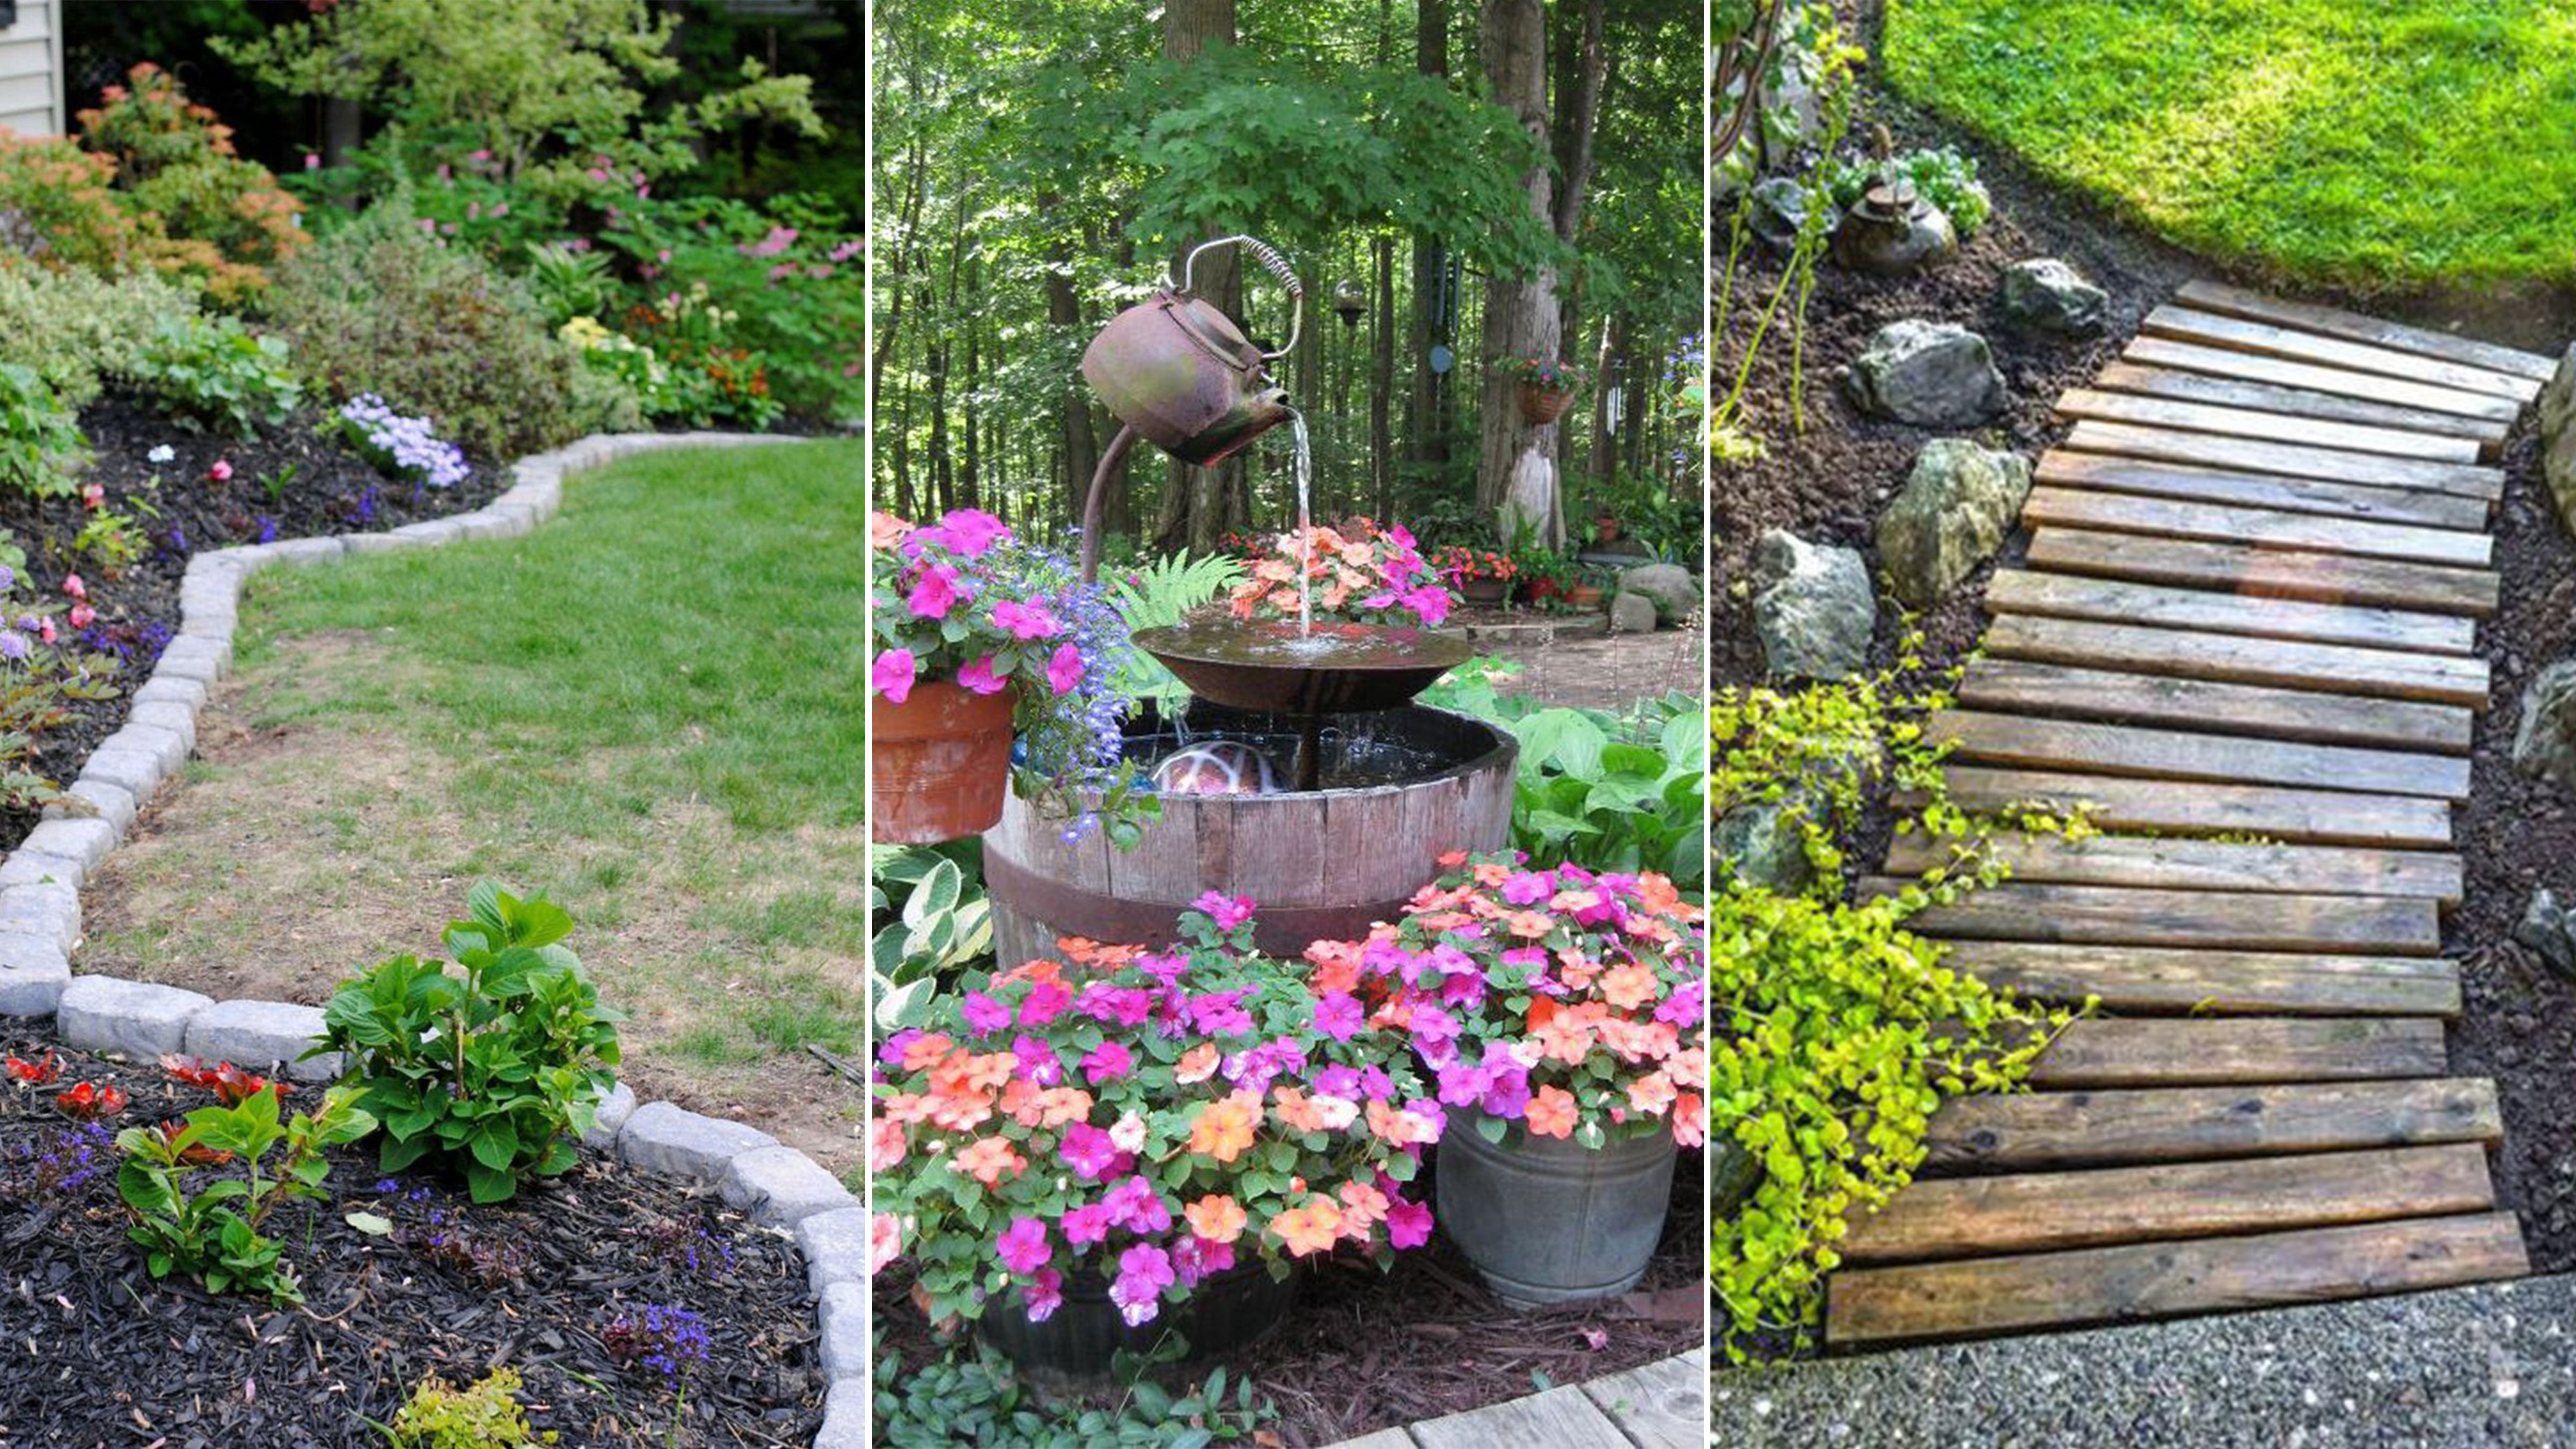 10 Spectacular Landscaping Ideas For Backyard On A Budget 14 cheap landscaping ideas budget friendly landscape tips for 5 2021